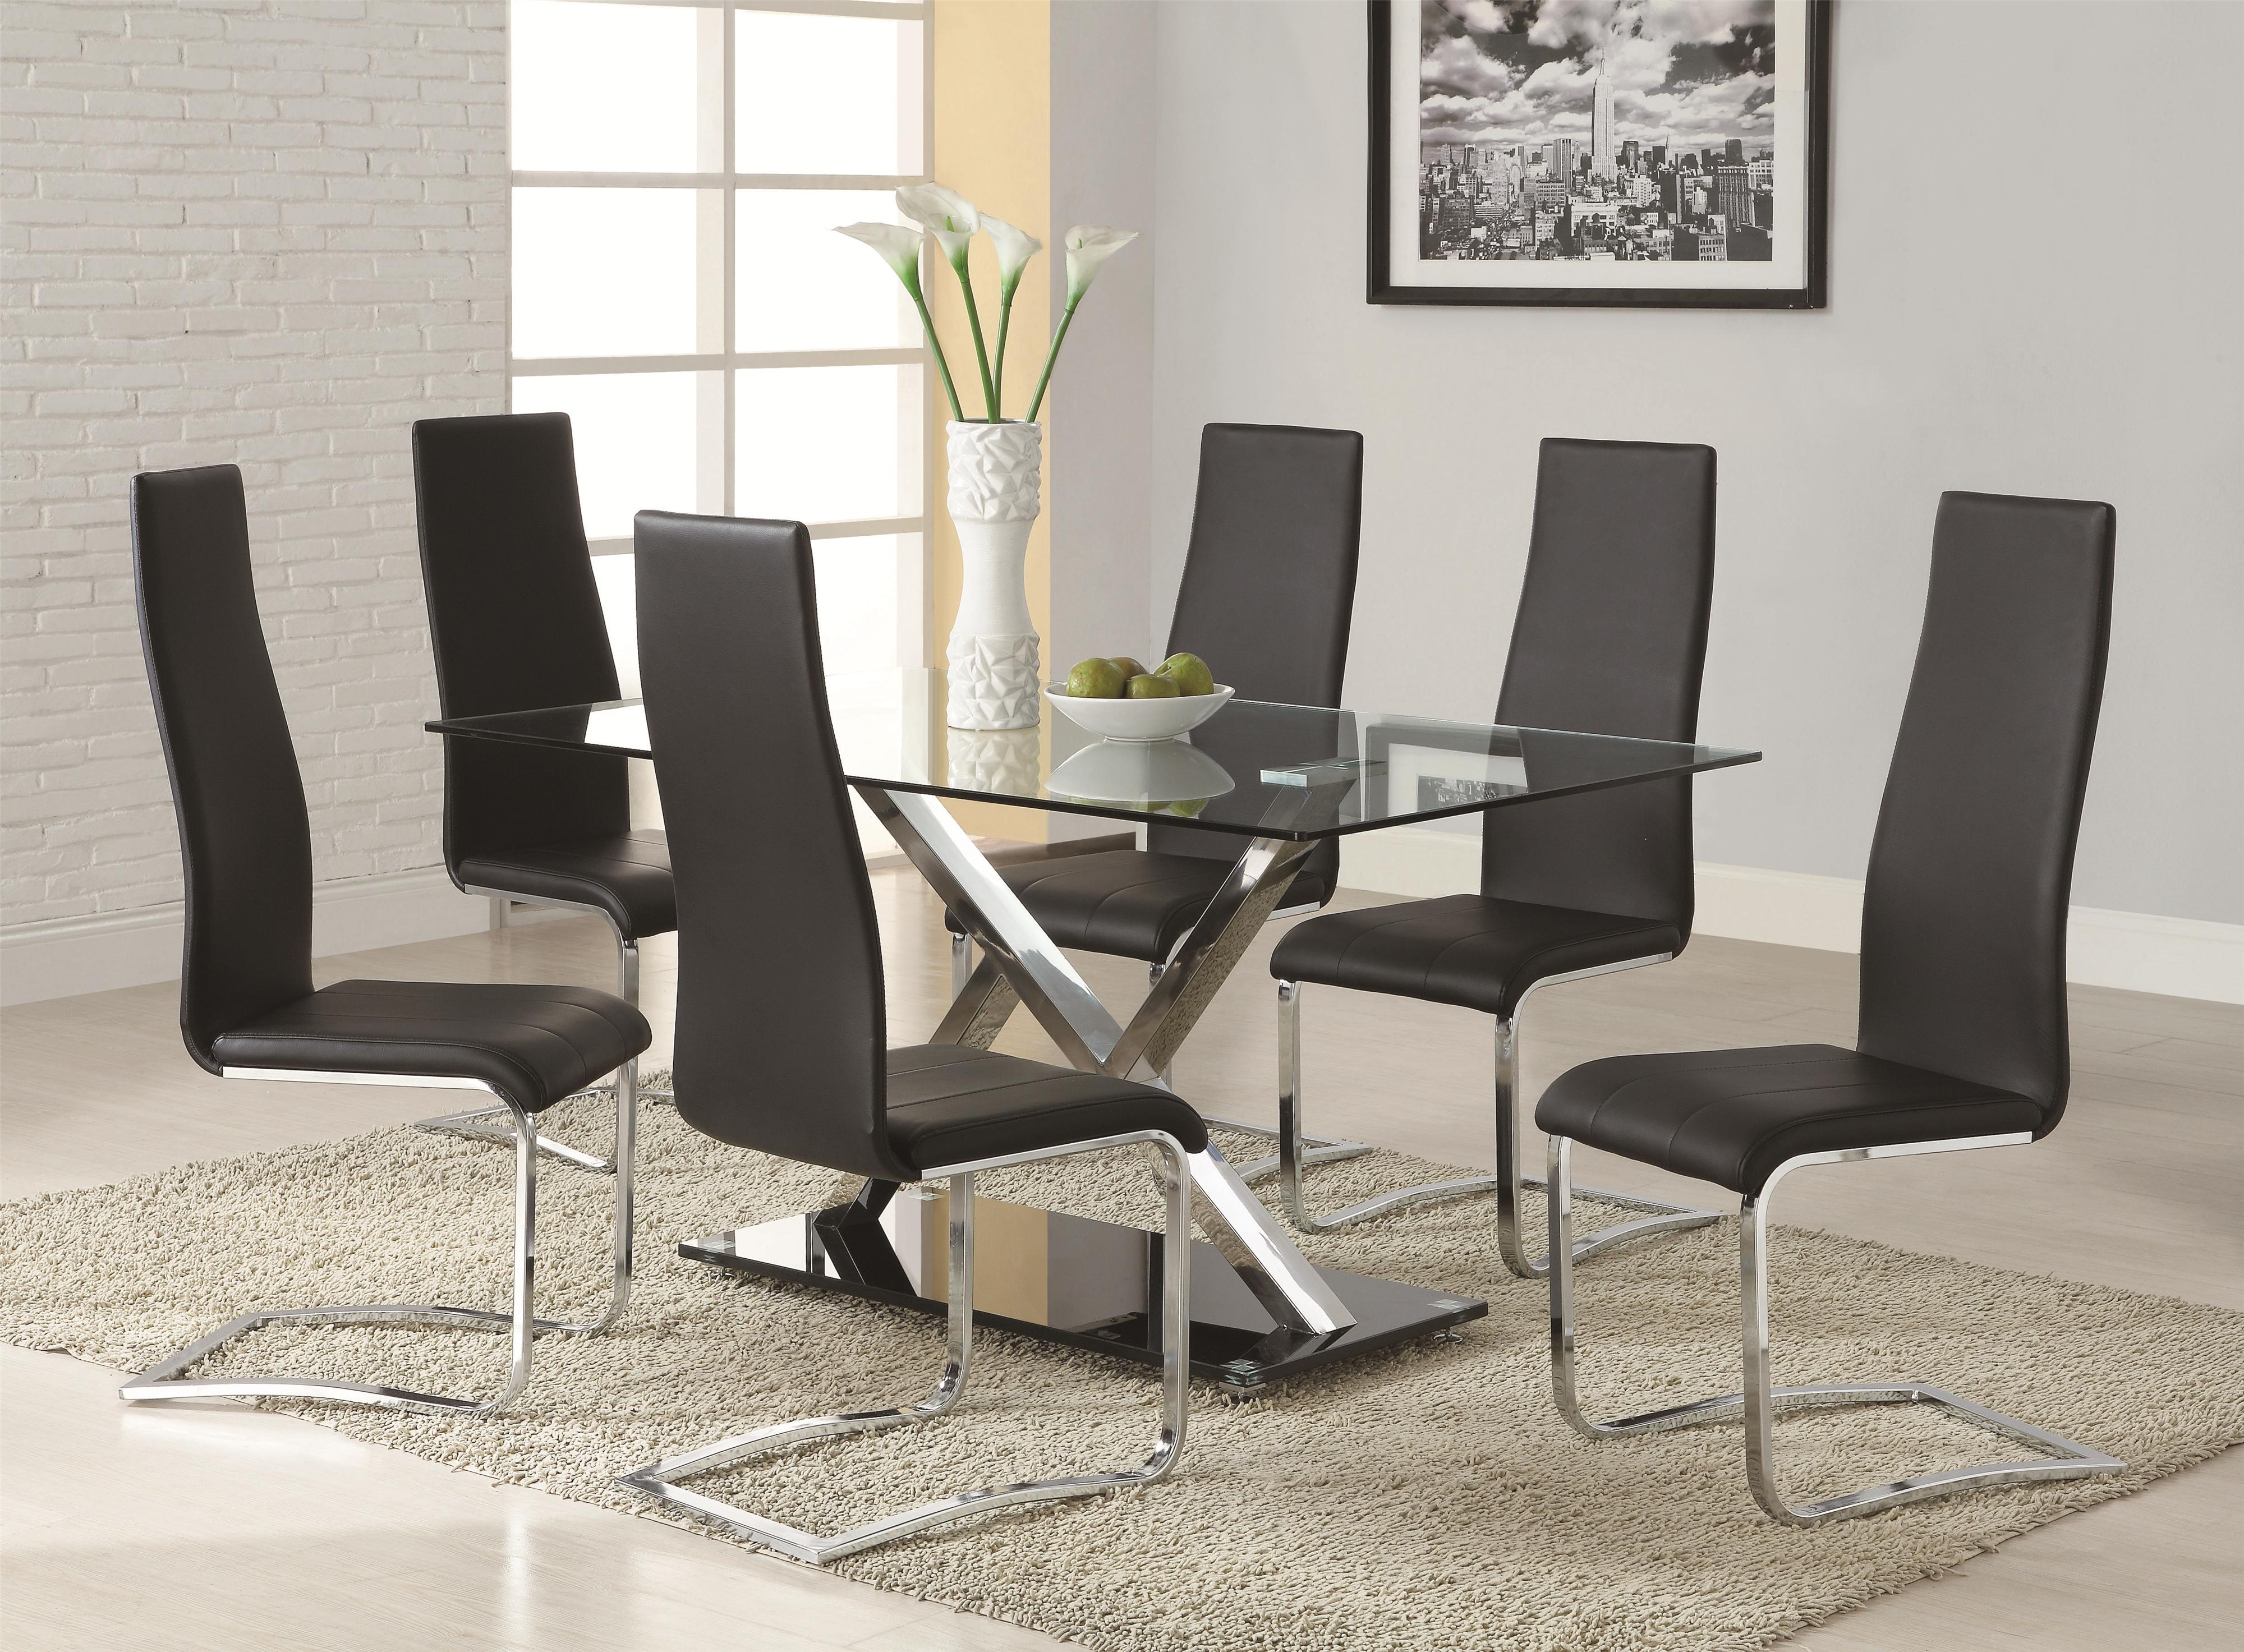 modern kitchen table chairs Coaster Modern Dining White Dining Table with Chrome Metal Base Coaster Fine Furniture